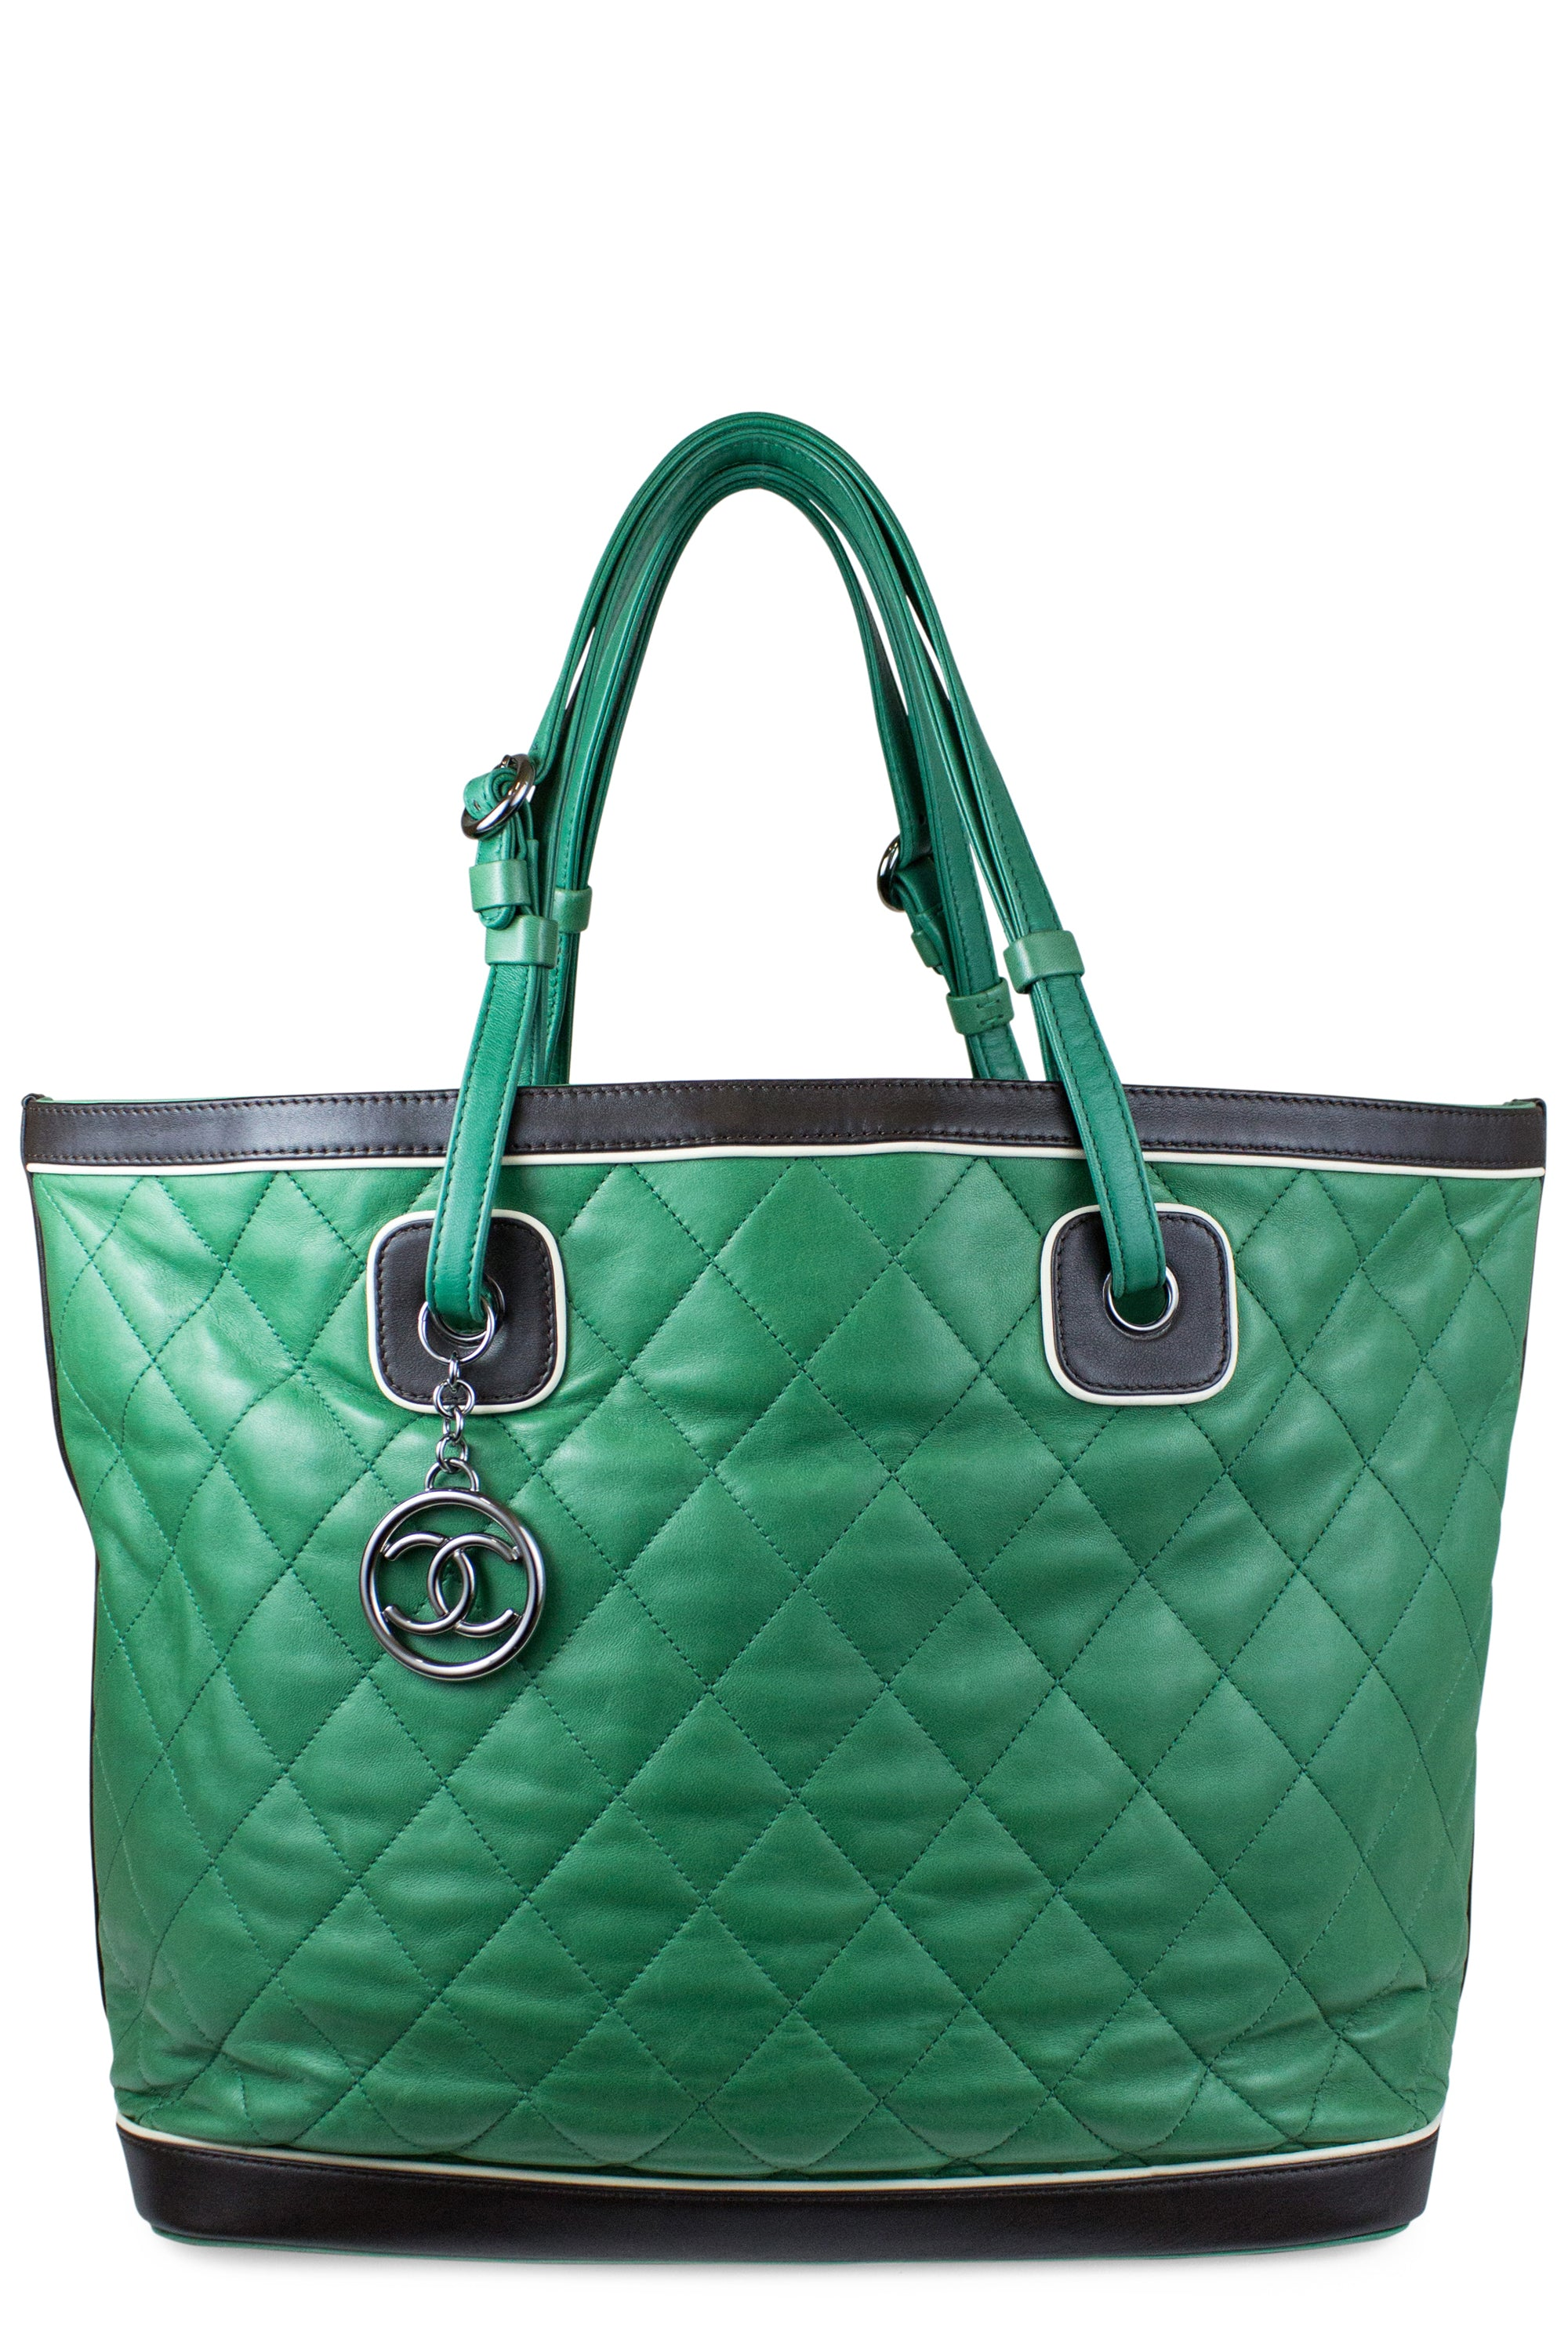 Chanel Kelly Green Leather Tote